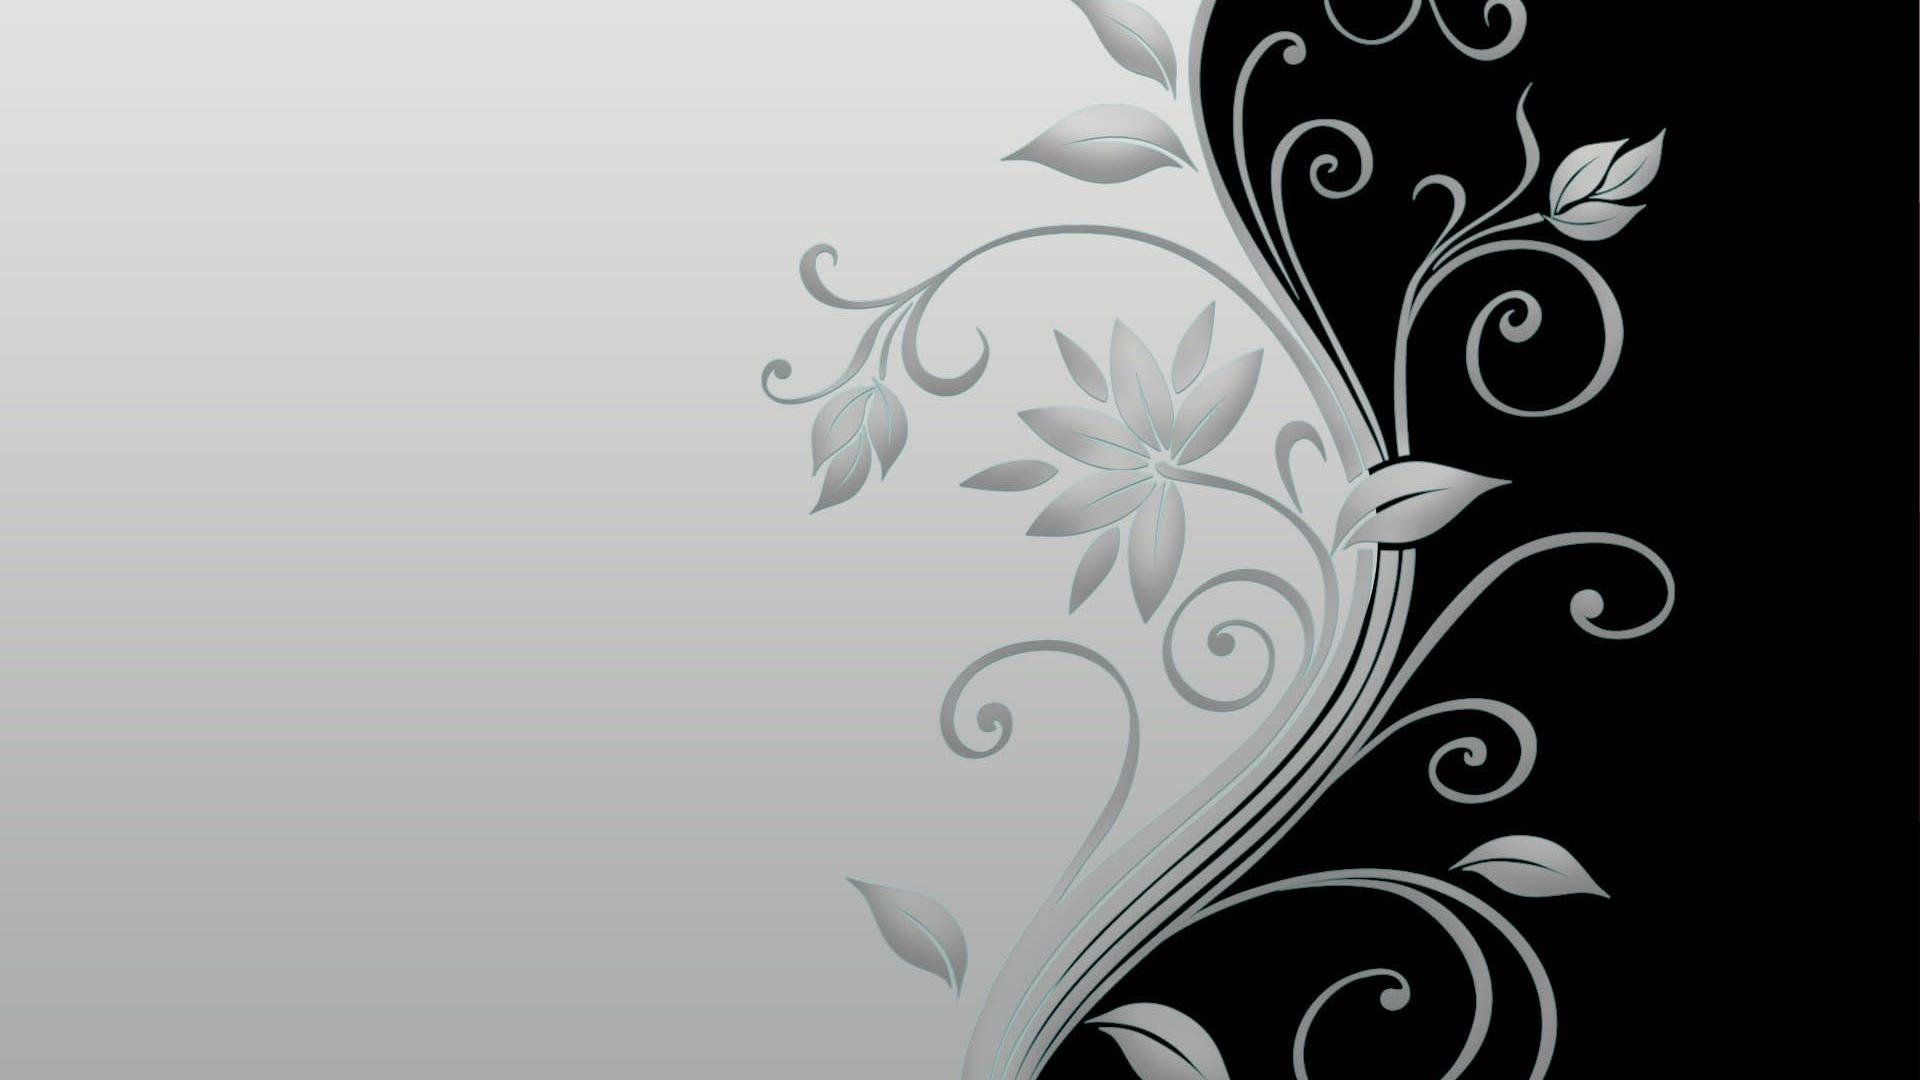 14 Black And White Floral Background Vector Images